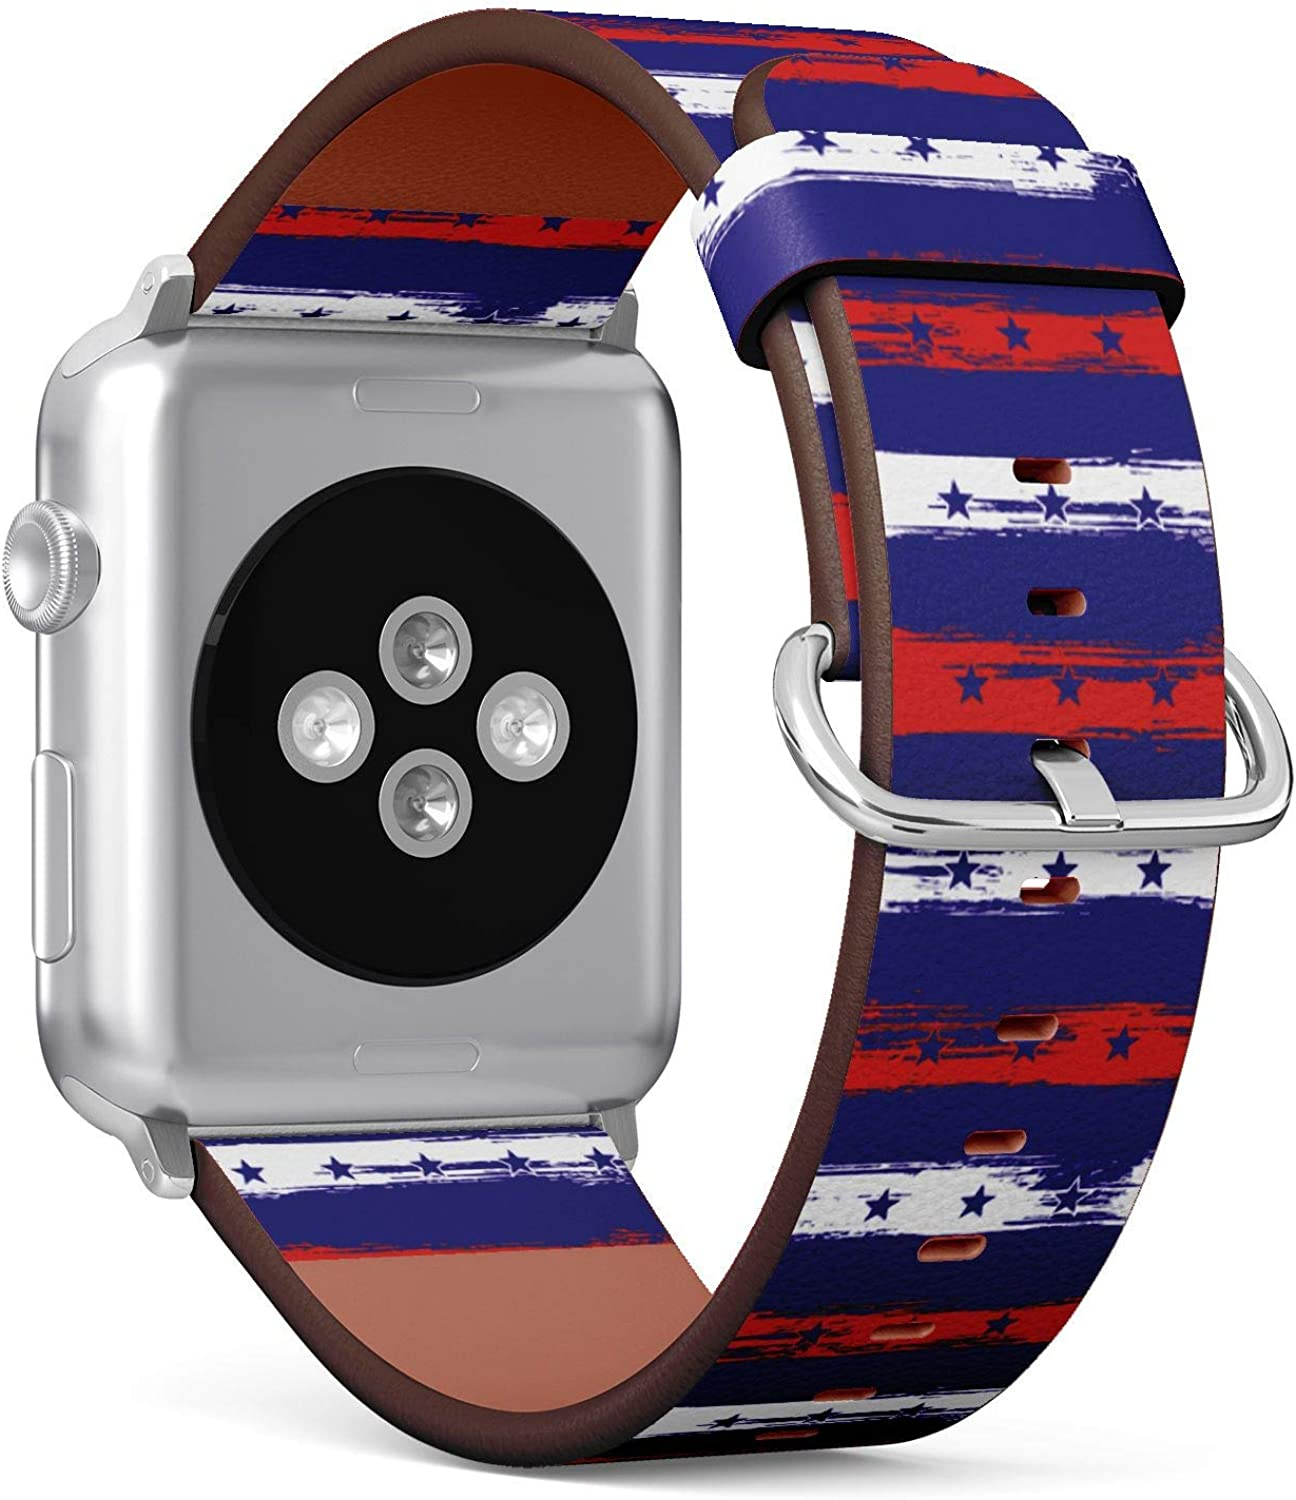 (4th July Stars and Stripes Retro Pattern in USA Flag Colors) Patterned Leather Wristband Strap for Apple Watch Series 4/3/2/1 gen,Replacement for iWatch 38mm / 40mm Bands